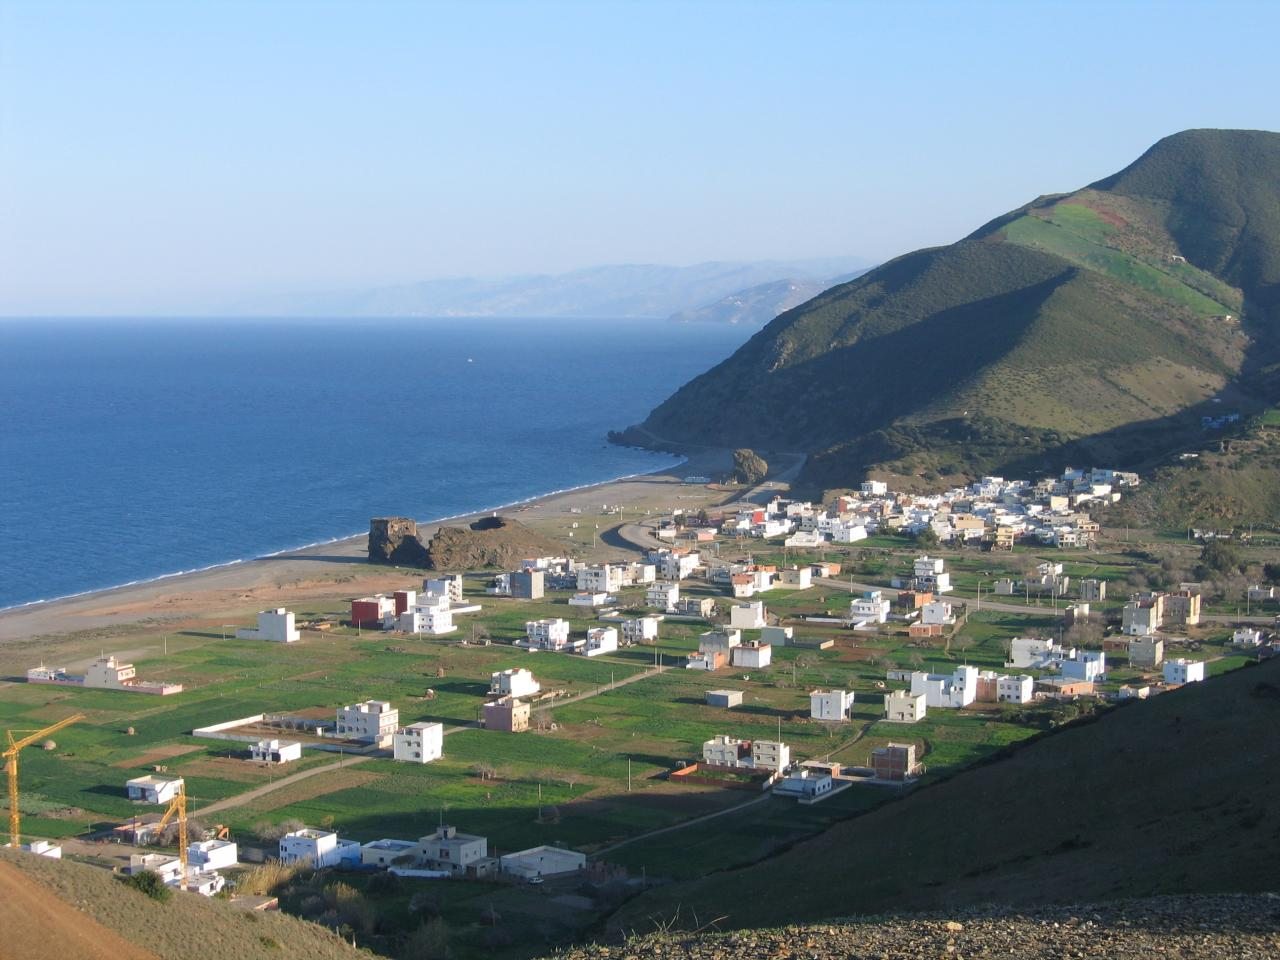 Oued Laou